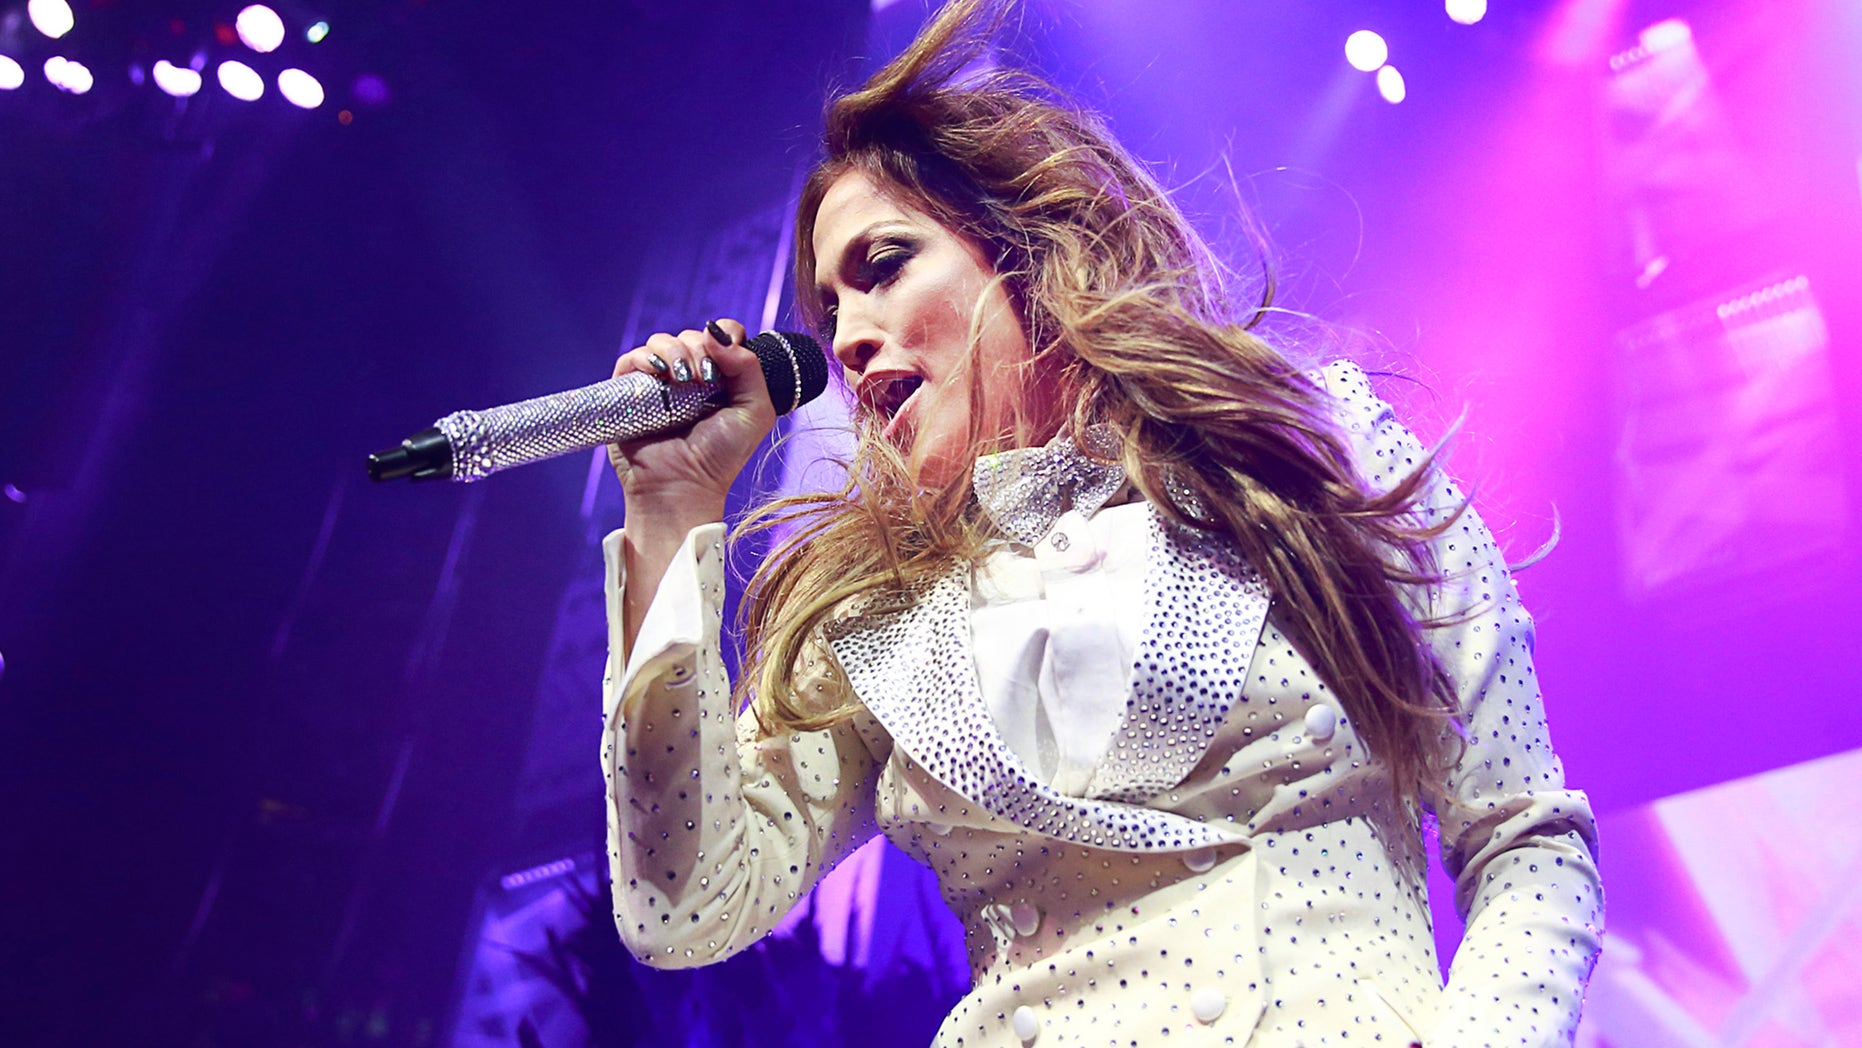 VANCOUVER, BC - OCTOBER 22:  Multi-platinum, award-winning performer and actress, Jennifer Lopez, makes a surprise appearance at We Day at Rogers Arena on Wednesday October 22, 2014 in Vancouver, British Columbia, Canada. She performed a medley of her greatest hits in front of a live audience of 20,000 students. (Photo by Jeff Vinnick/Getty Images for Free The Children)